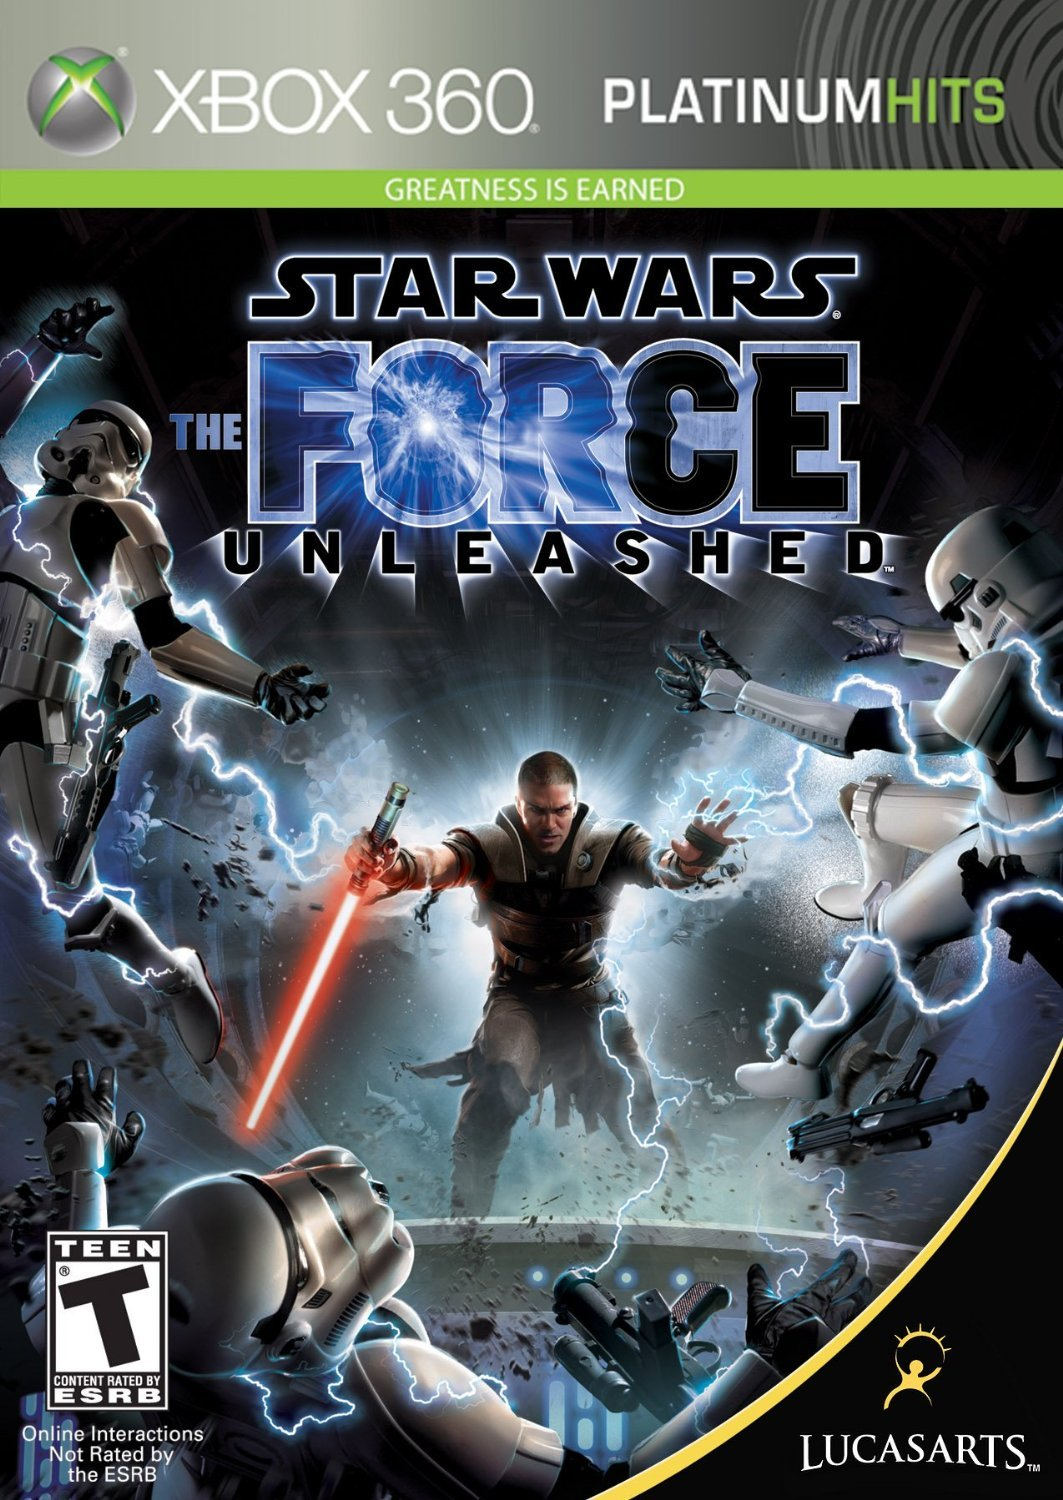 STAR-WARS-THE-FORCE-UNLEASHED-HASZNALT-509